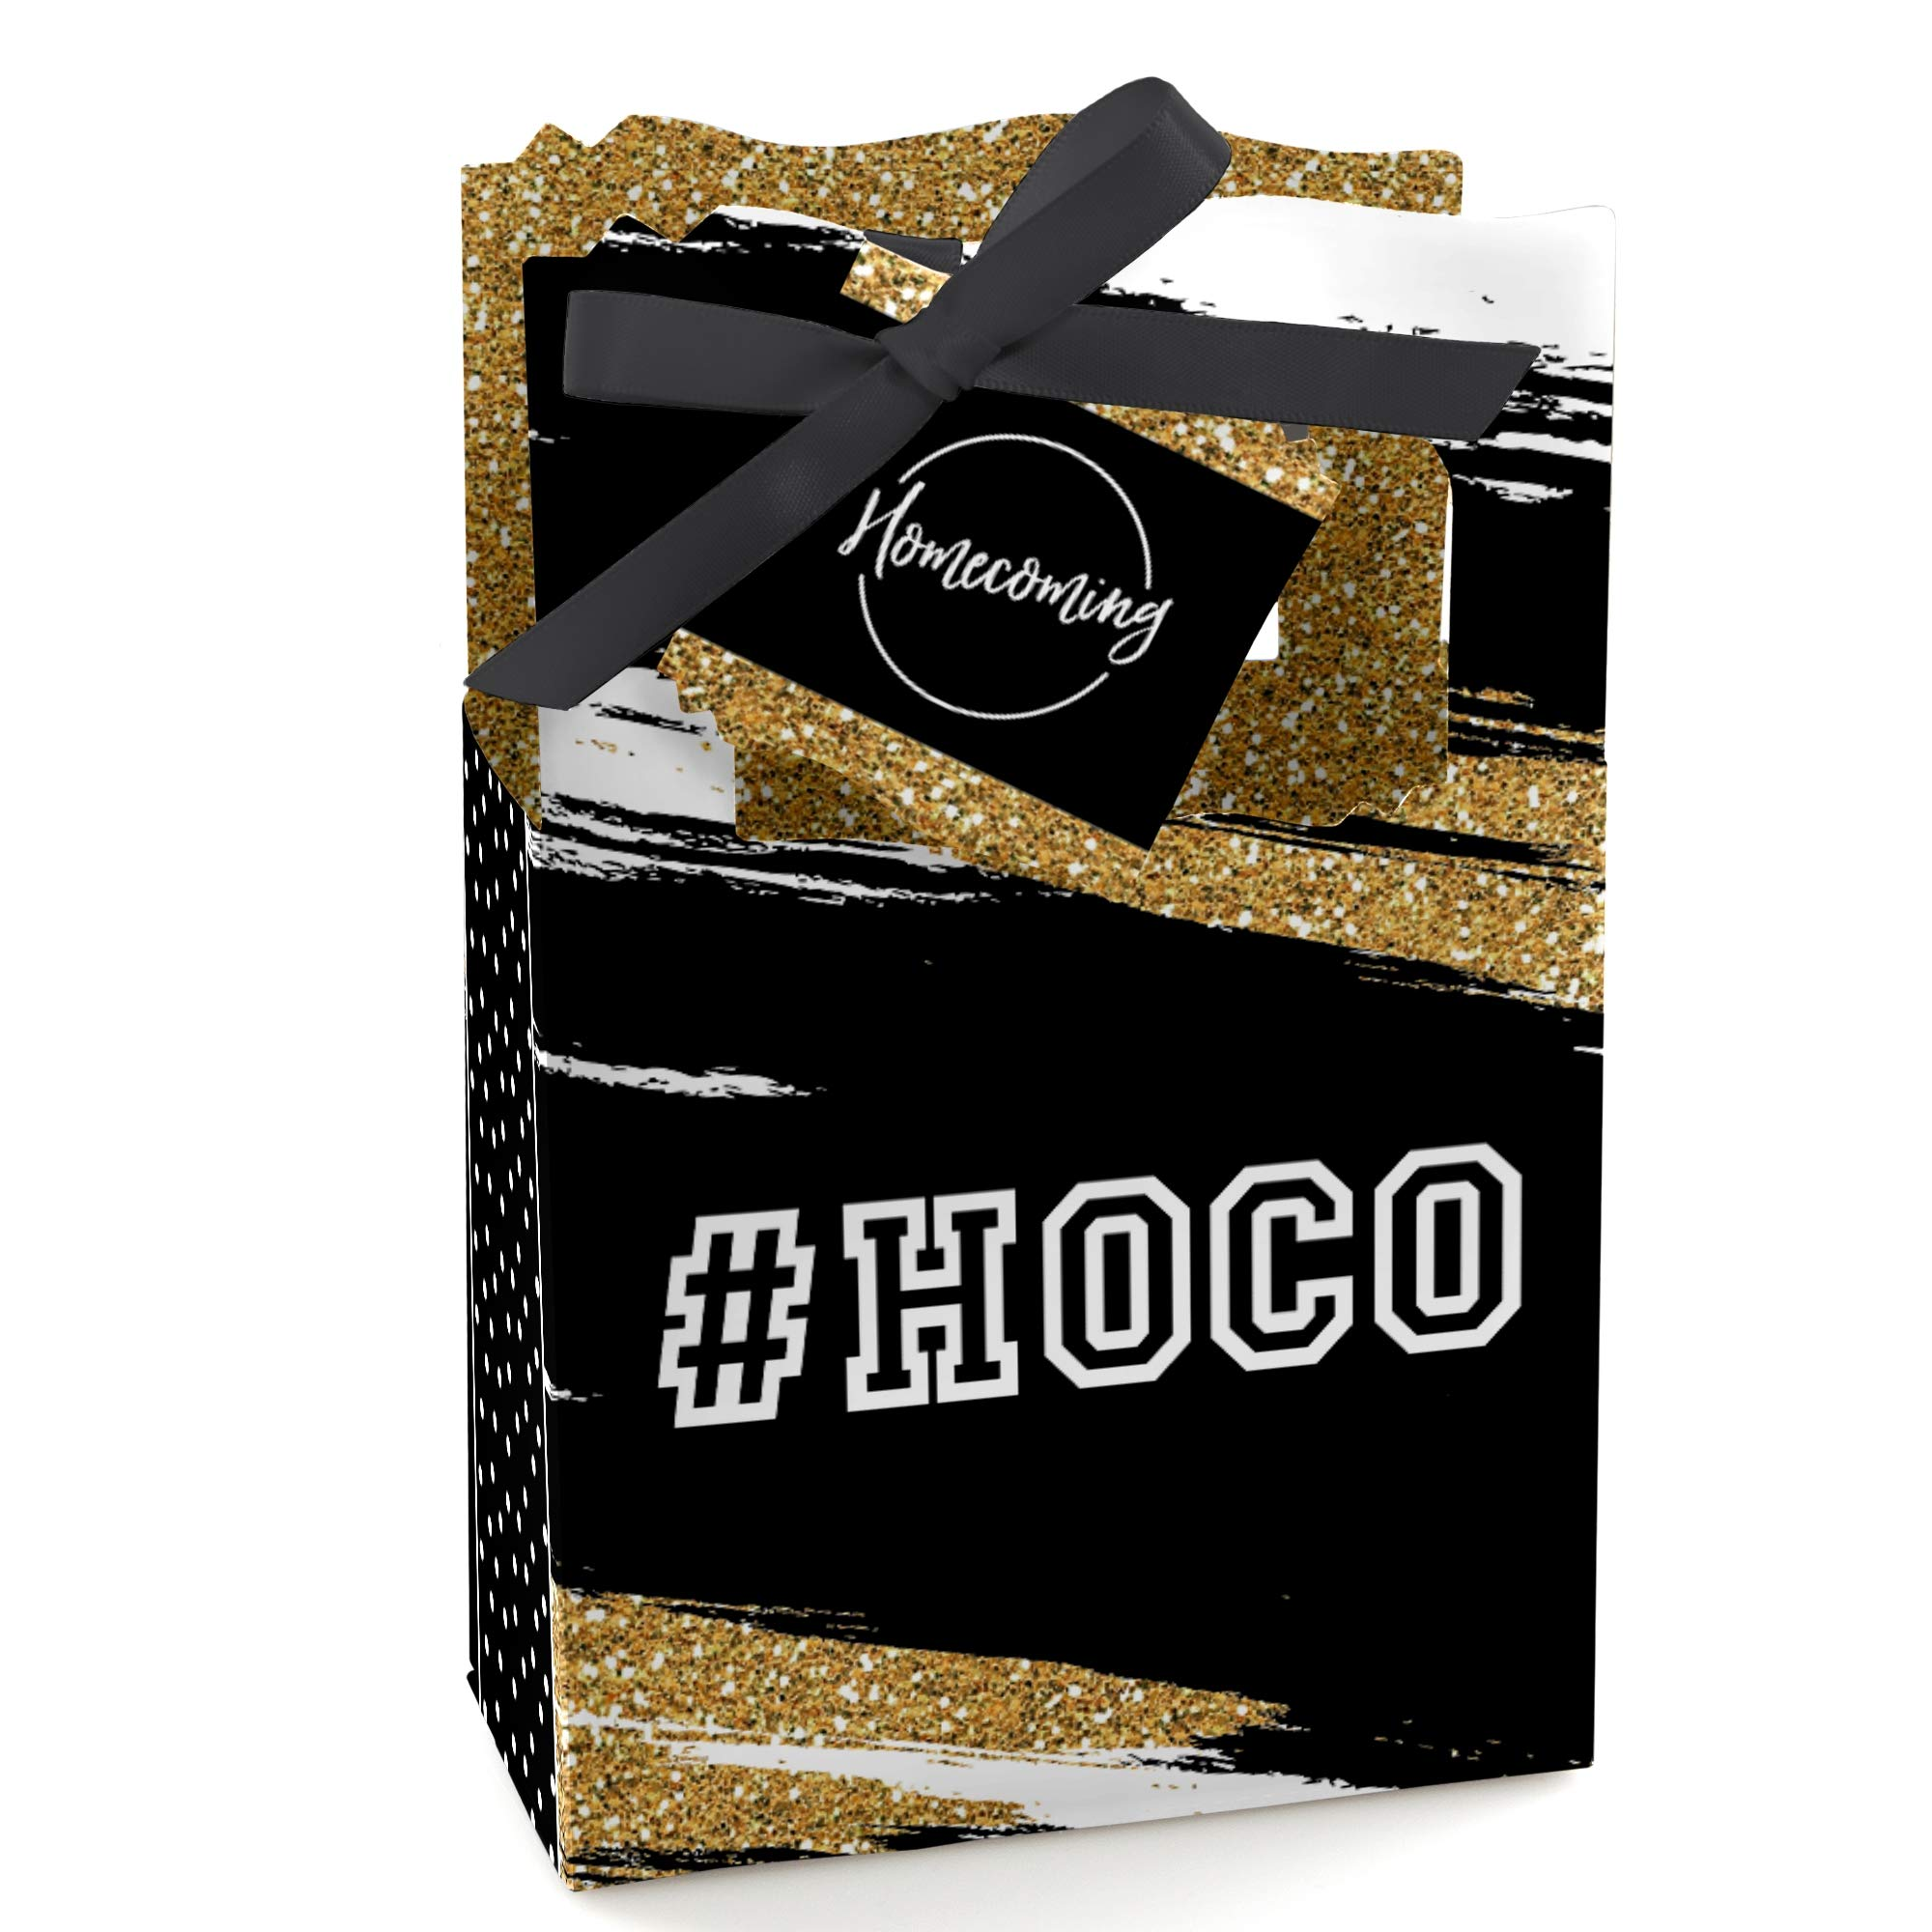 HOCO Dance - Homecoming Party Favor Boxes - Set of 12